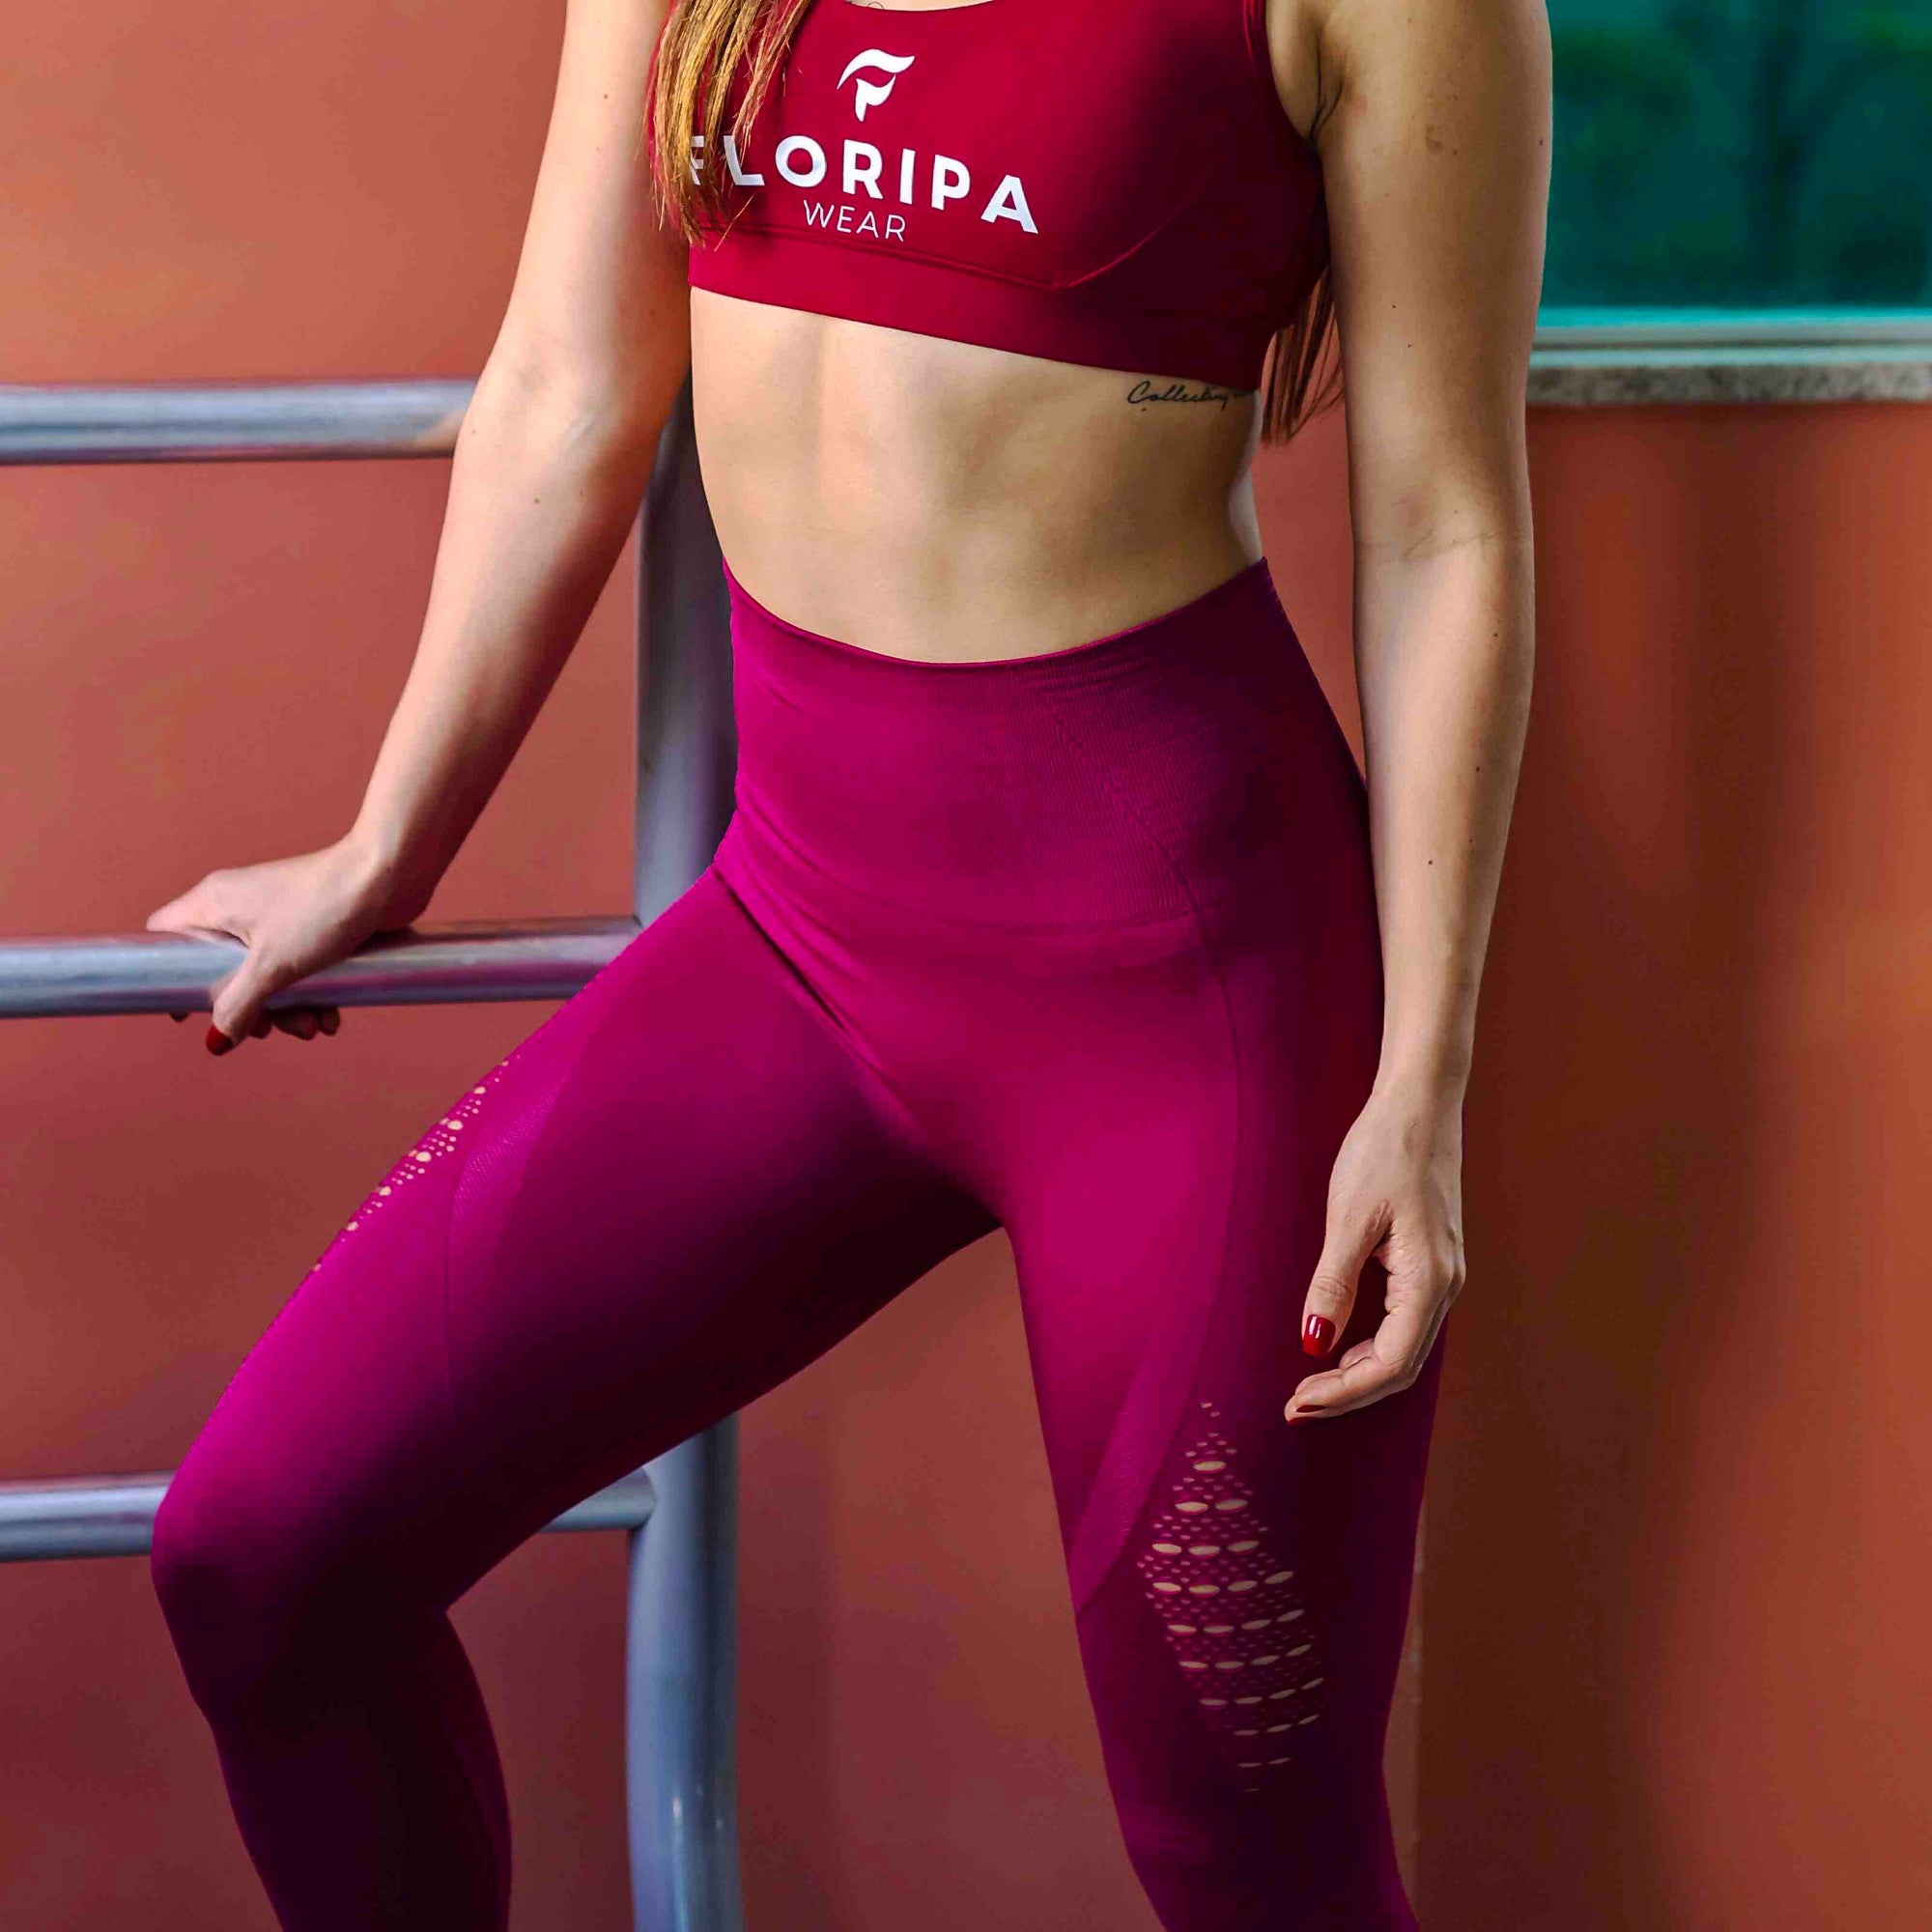 Burgundy red high waisted gym leggings - floripawear